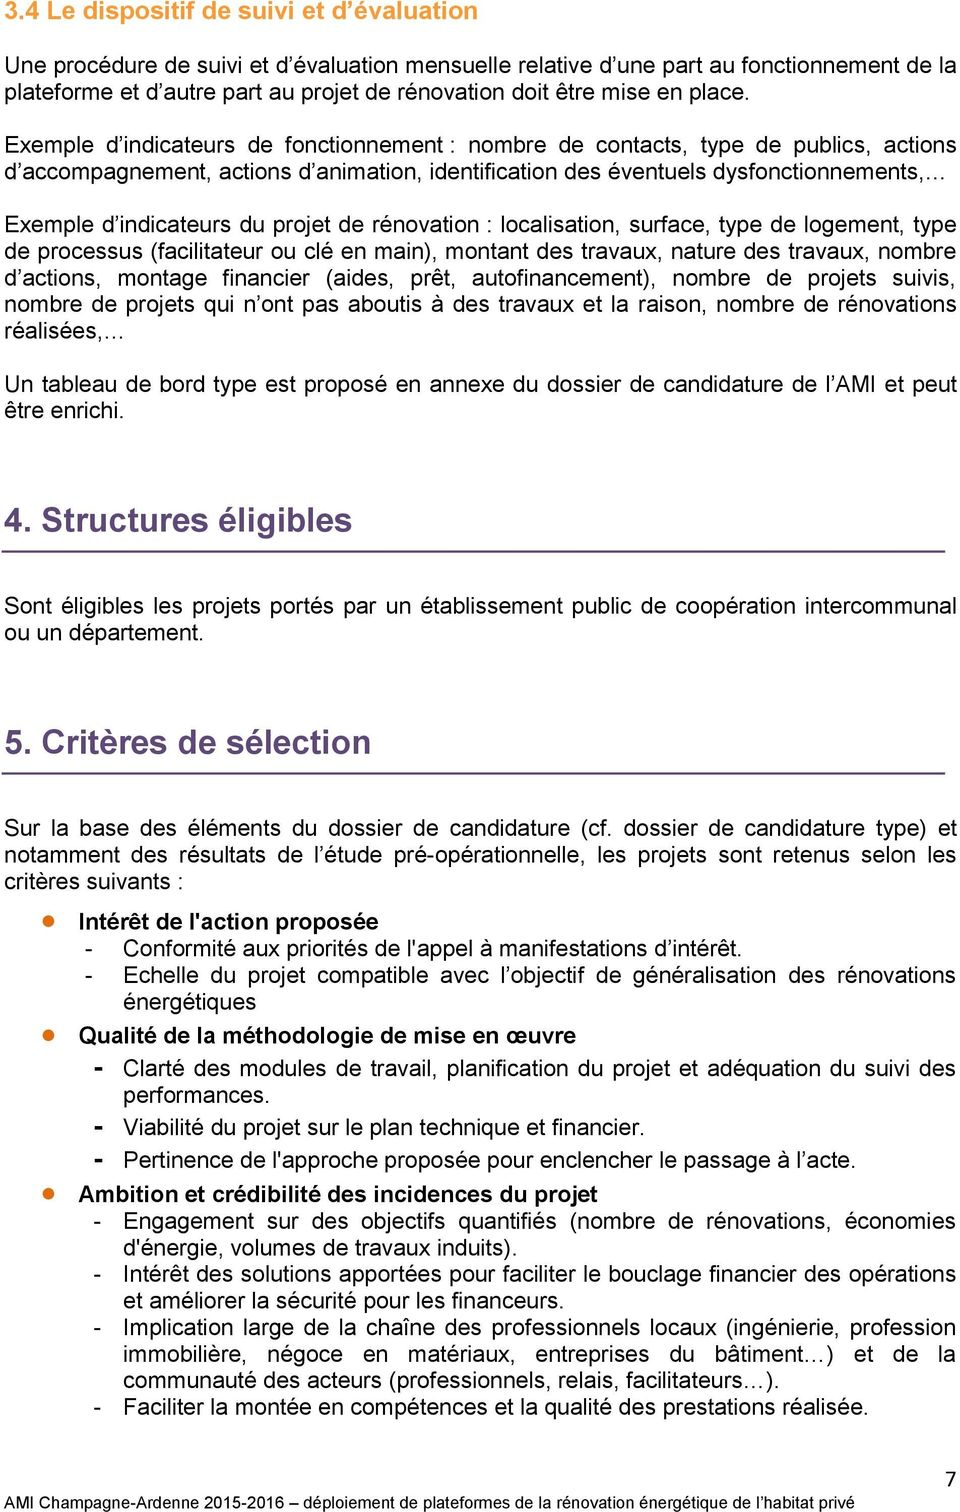 Exemple d indicateurs de fonctionnement : nombre de contacts, type de publics, actions d accompagnement, actions d animation, identification des éventuels dysfonctionnements, Exemple d indicateurs du